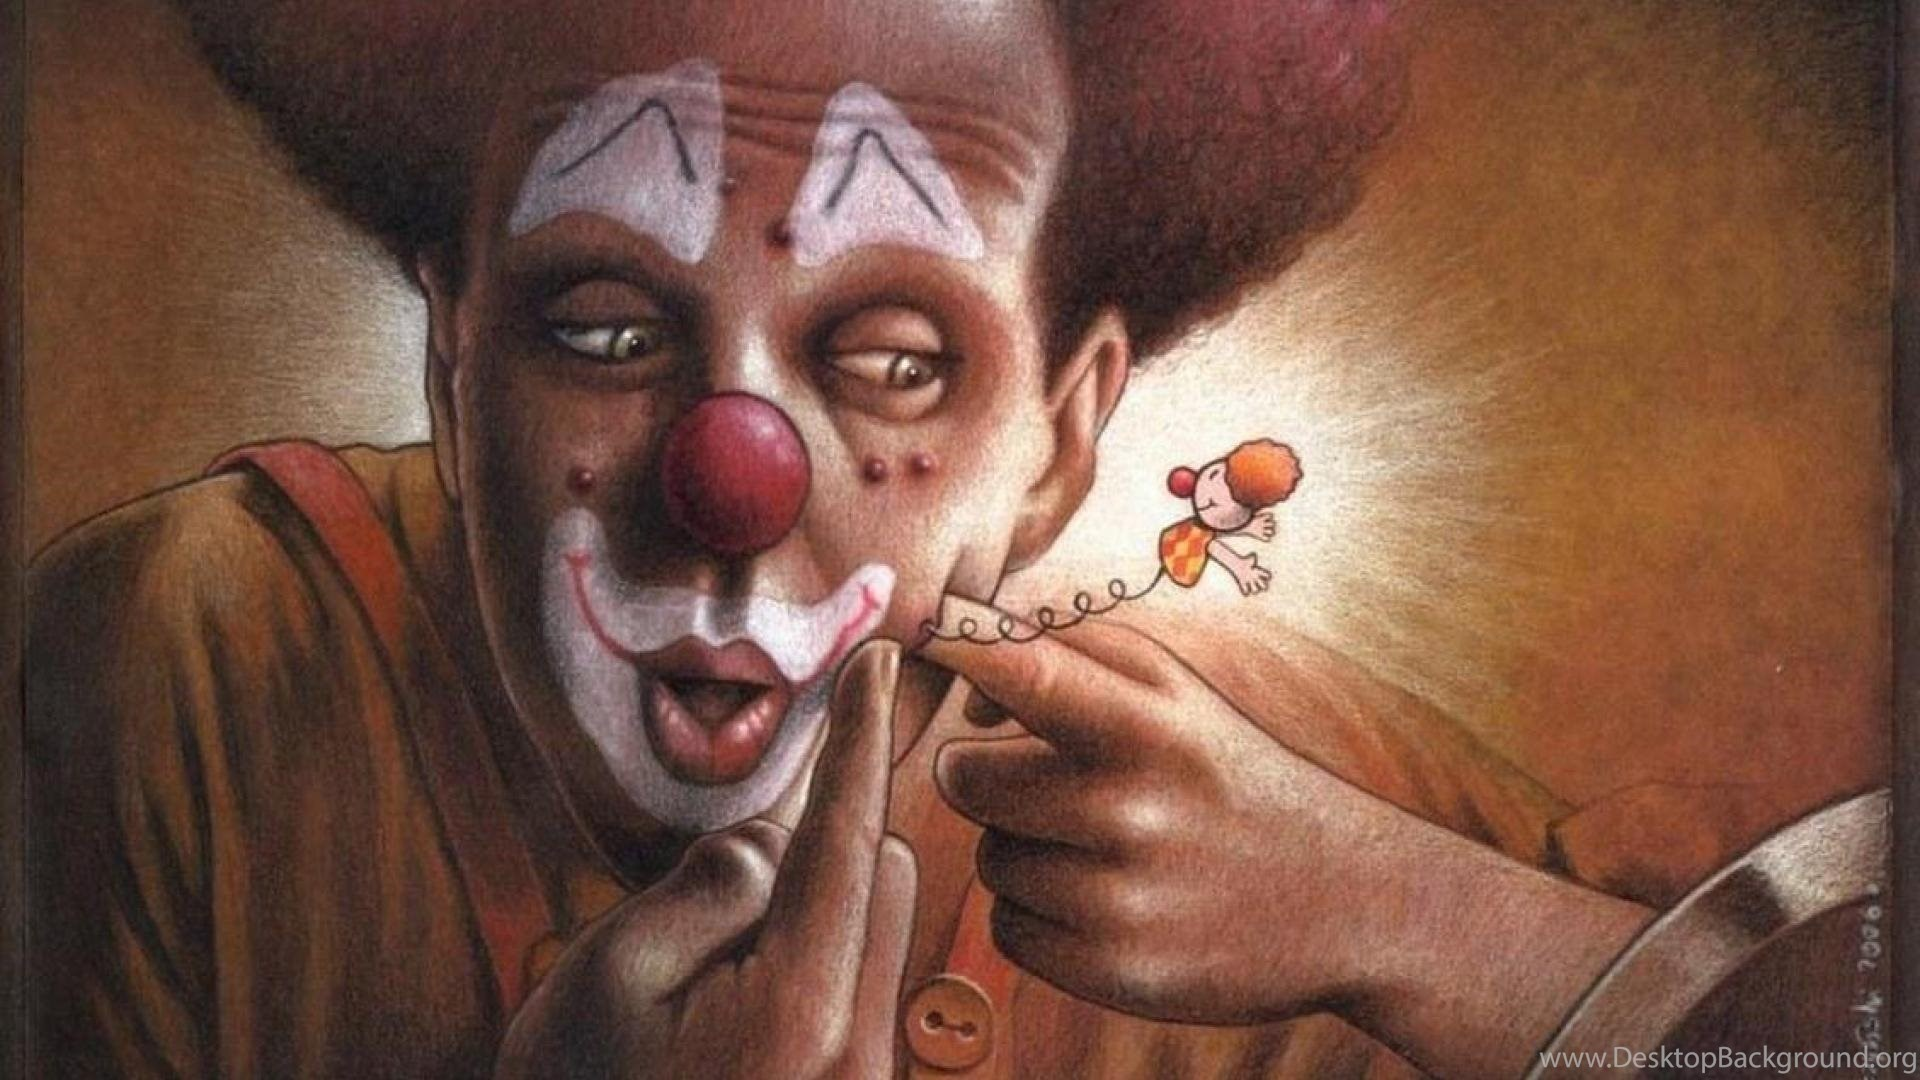 Funny Clown Wallpapers Desktop Background